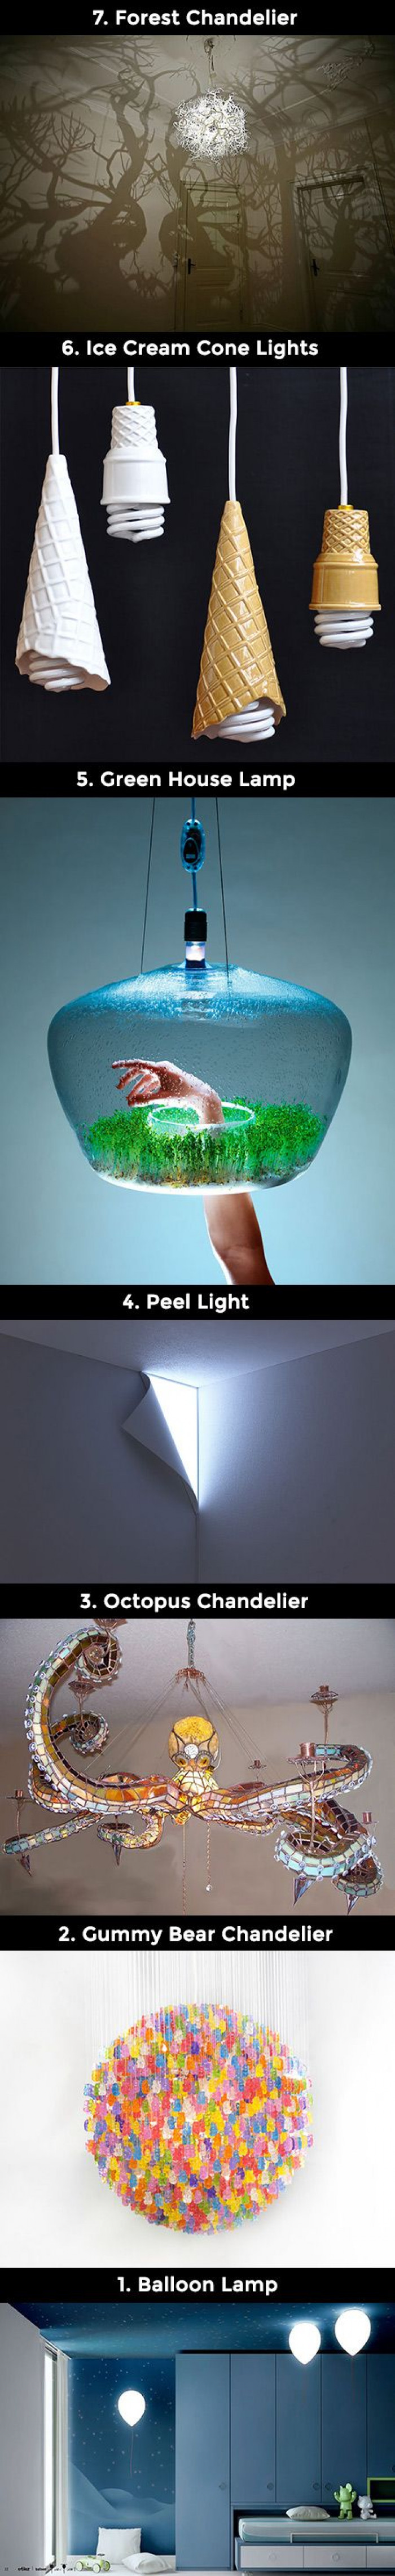 7 Ultra Creative Lamps and Lights That Geeks Would Love